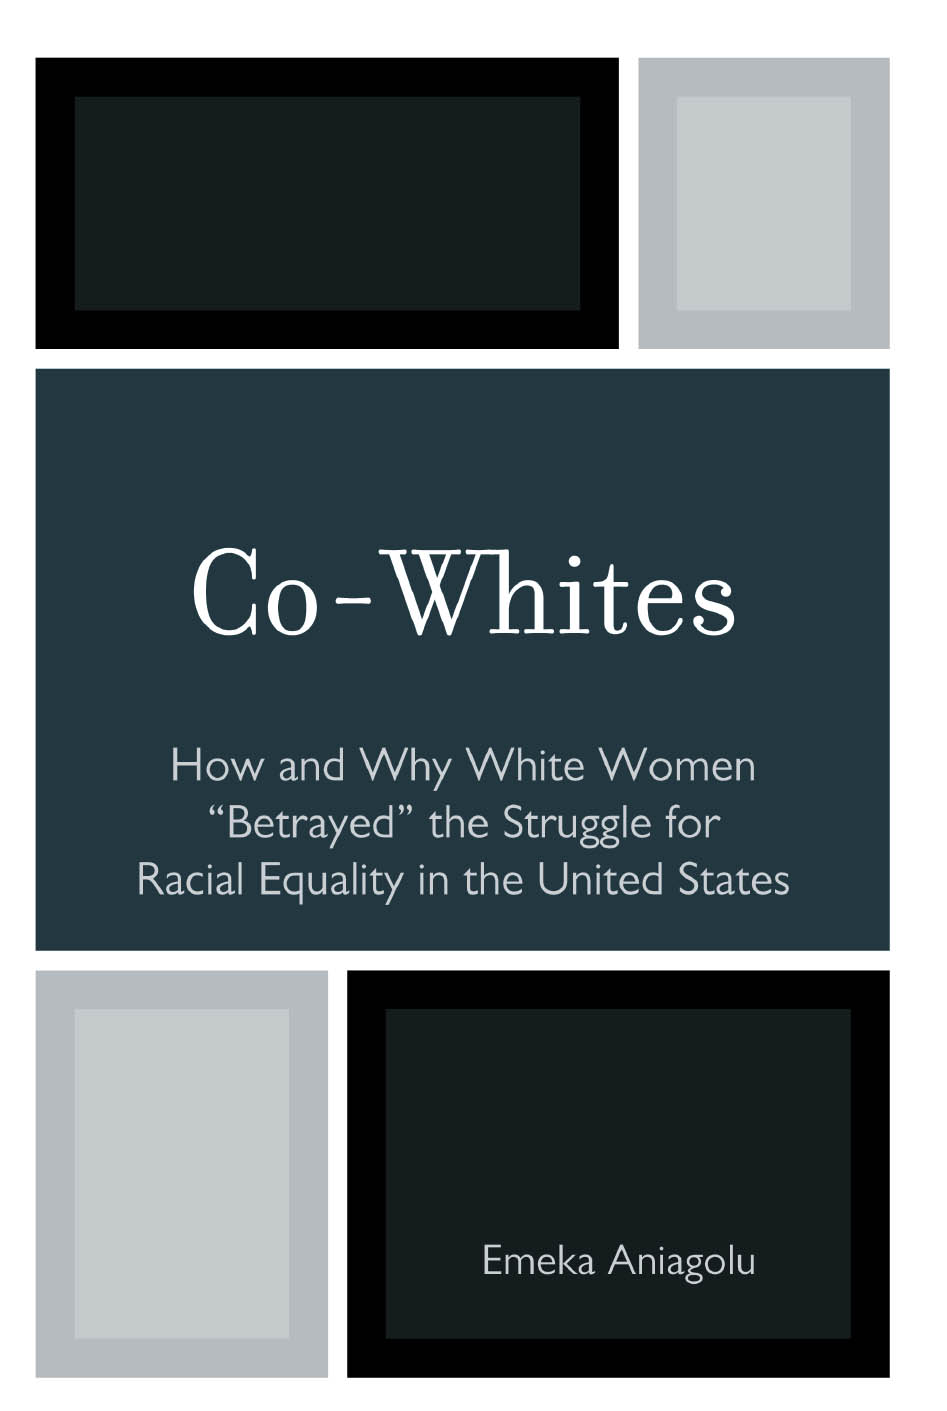 Co-Whites How and Why White Women 'Betrayed' the Struggle for Racial Equality in the United States